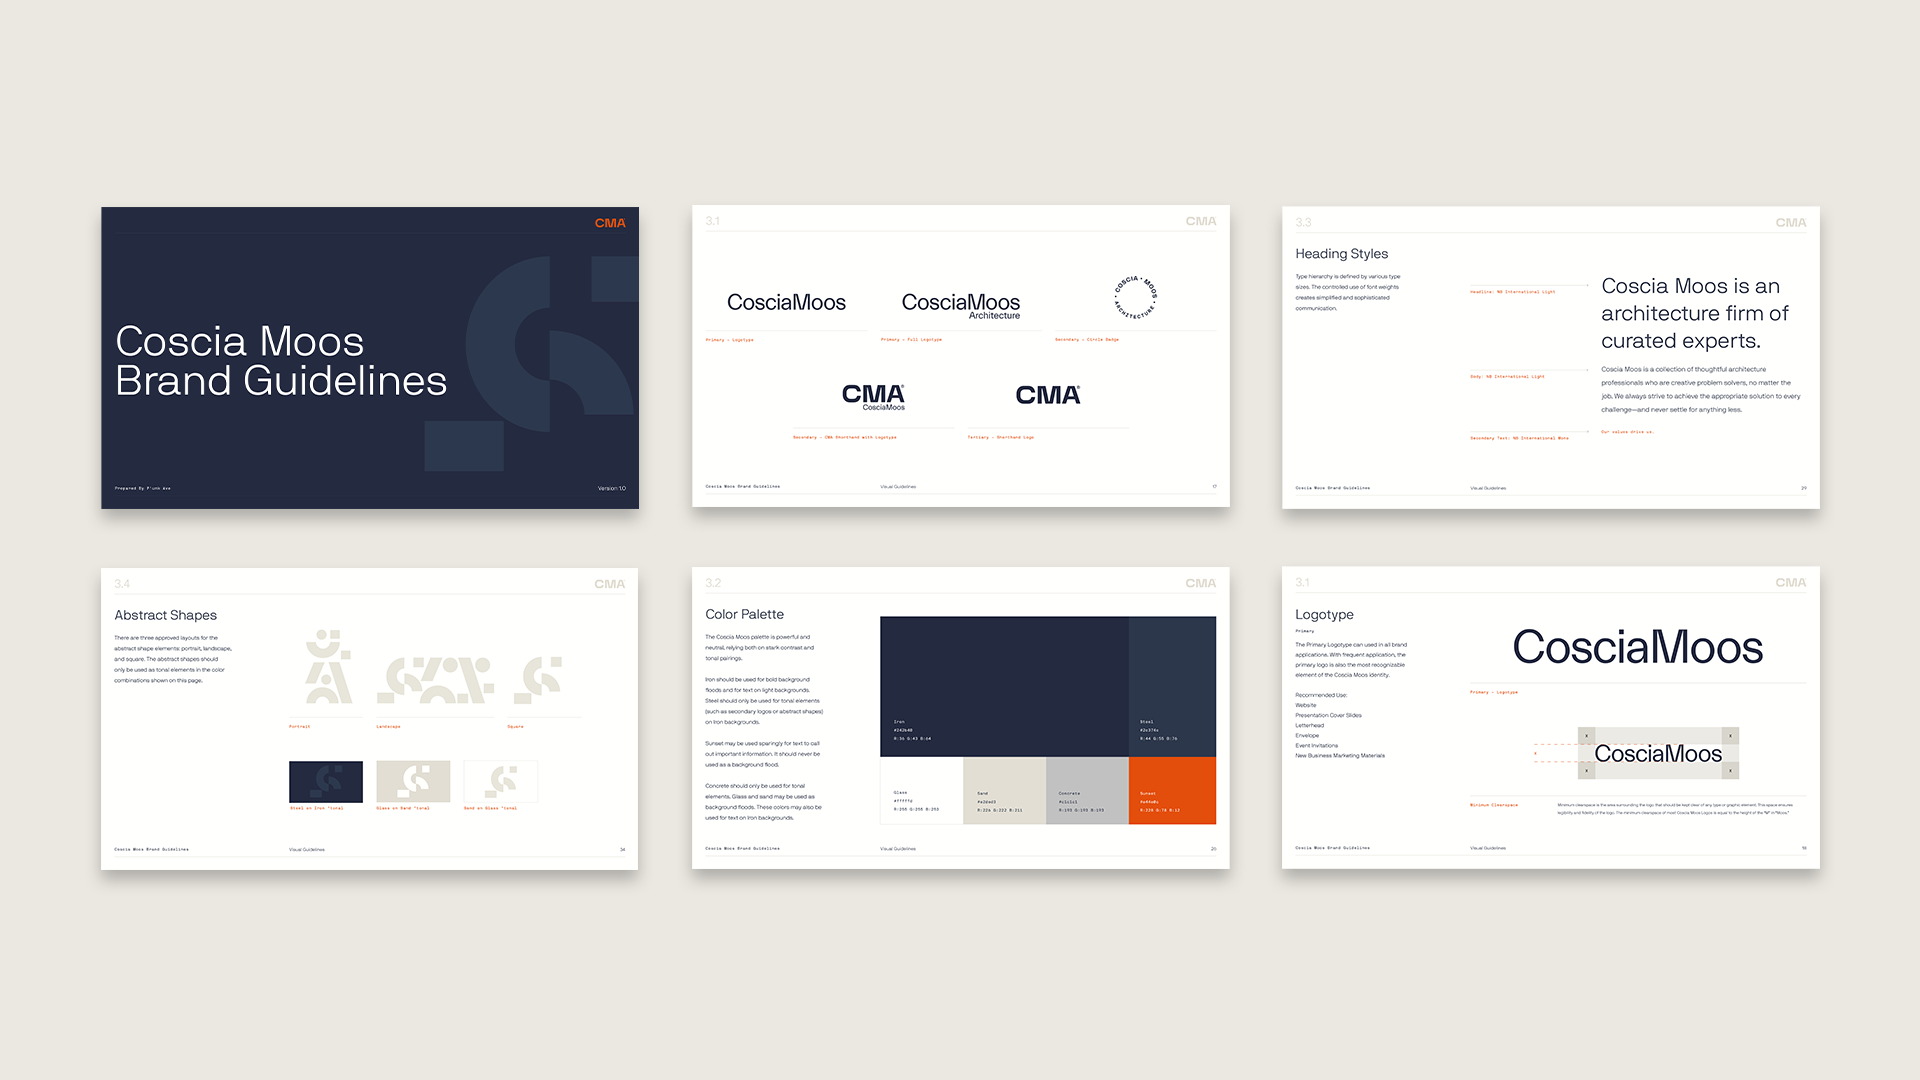 Coscia Moos Brand Guidelines Overview